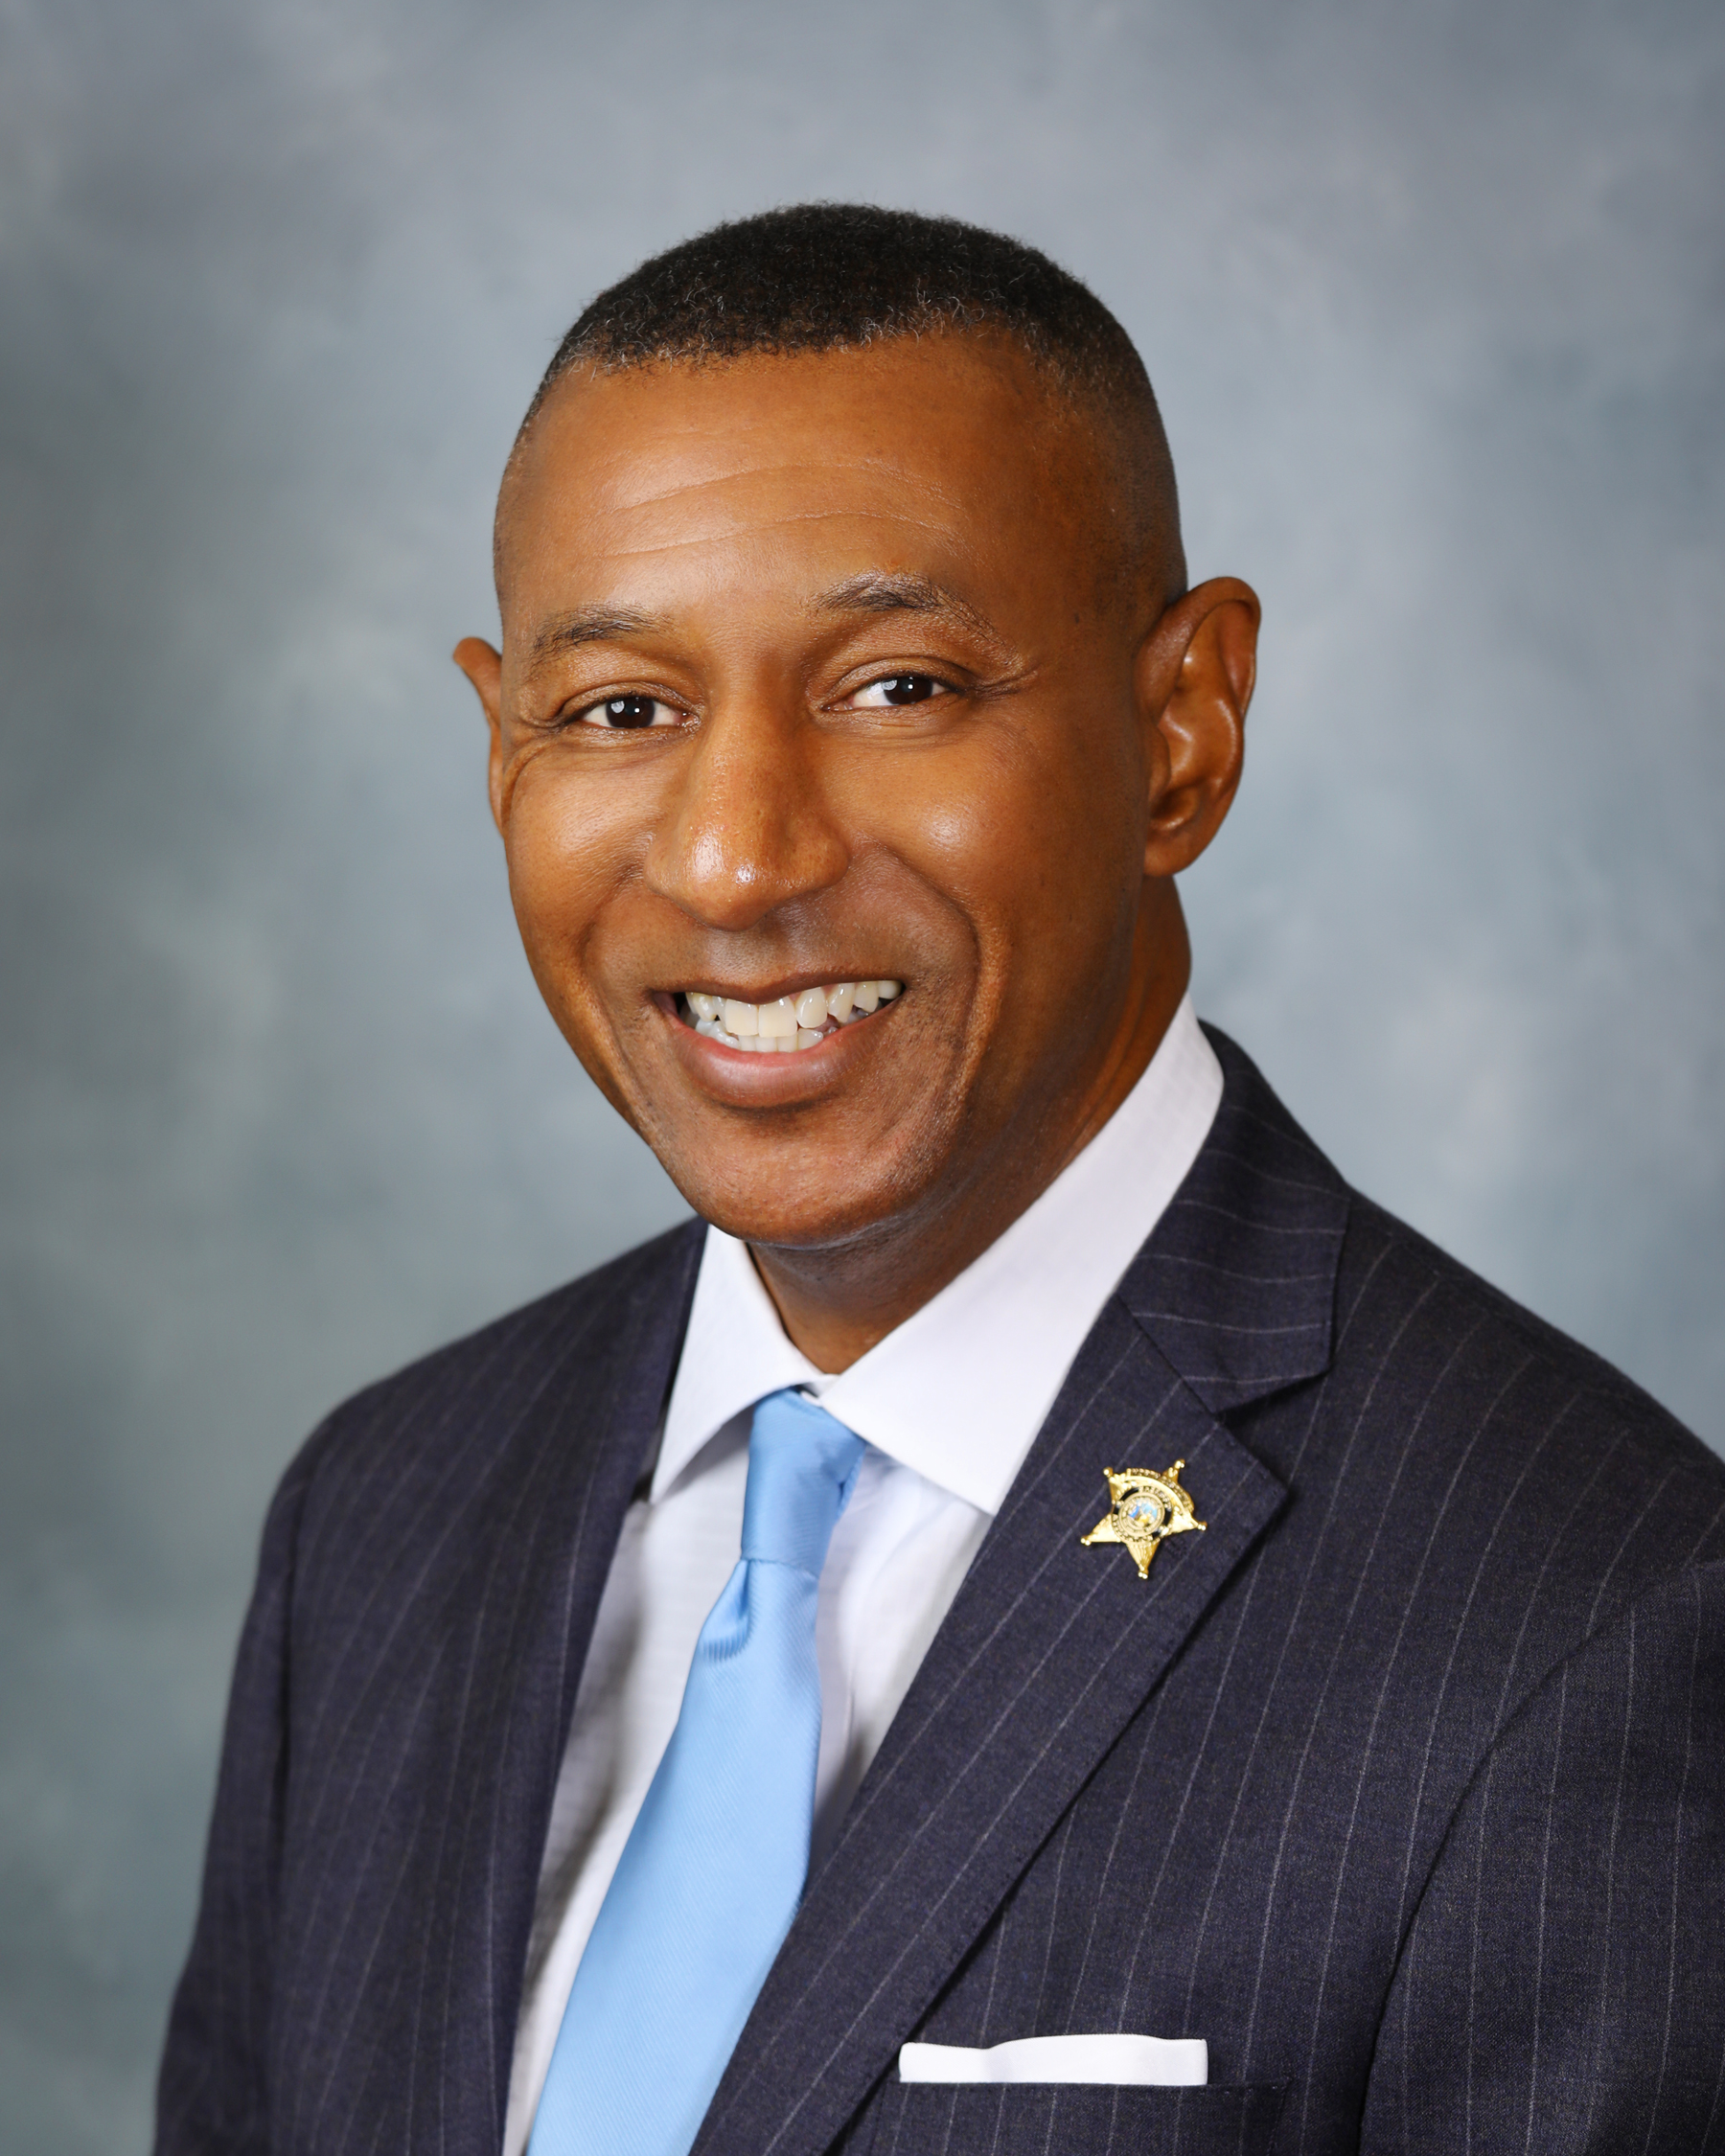 Sheriff Bobby F. Kimbrough, Jr. was elected in 2018 and is proudly serving Forsyth County.